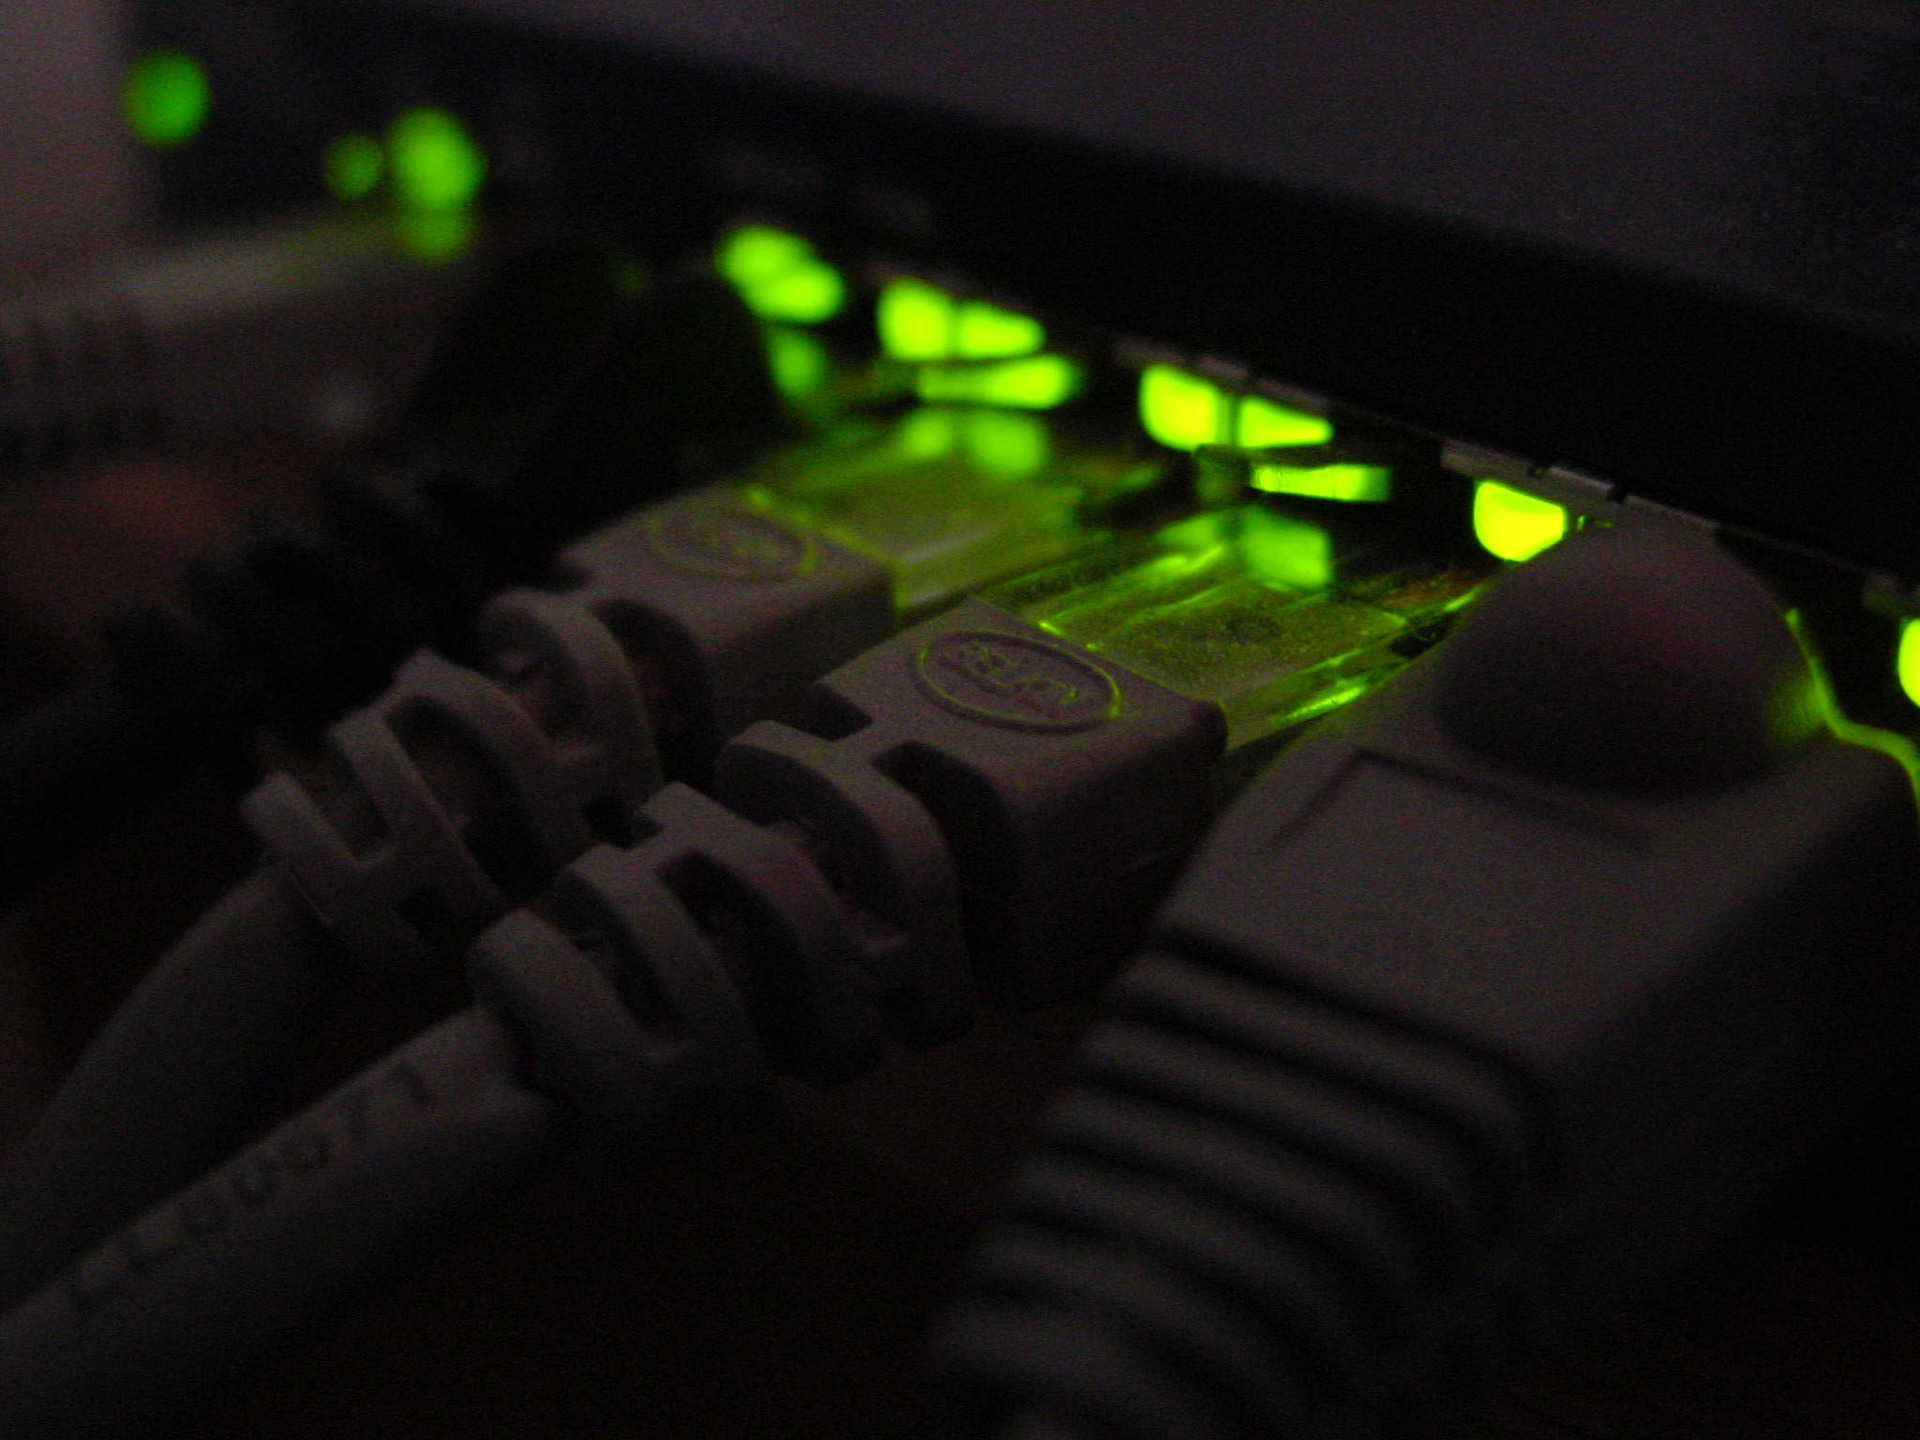 Is Your Home Network Getting the Job Done?